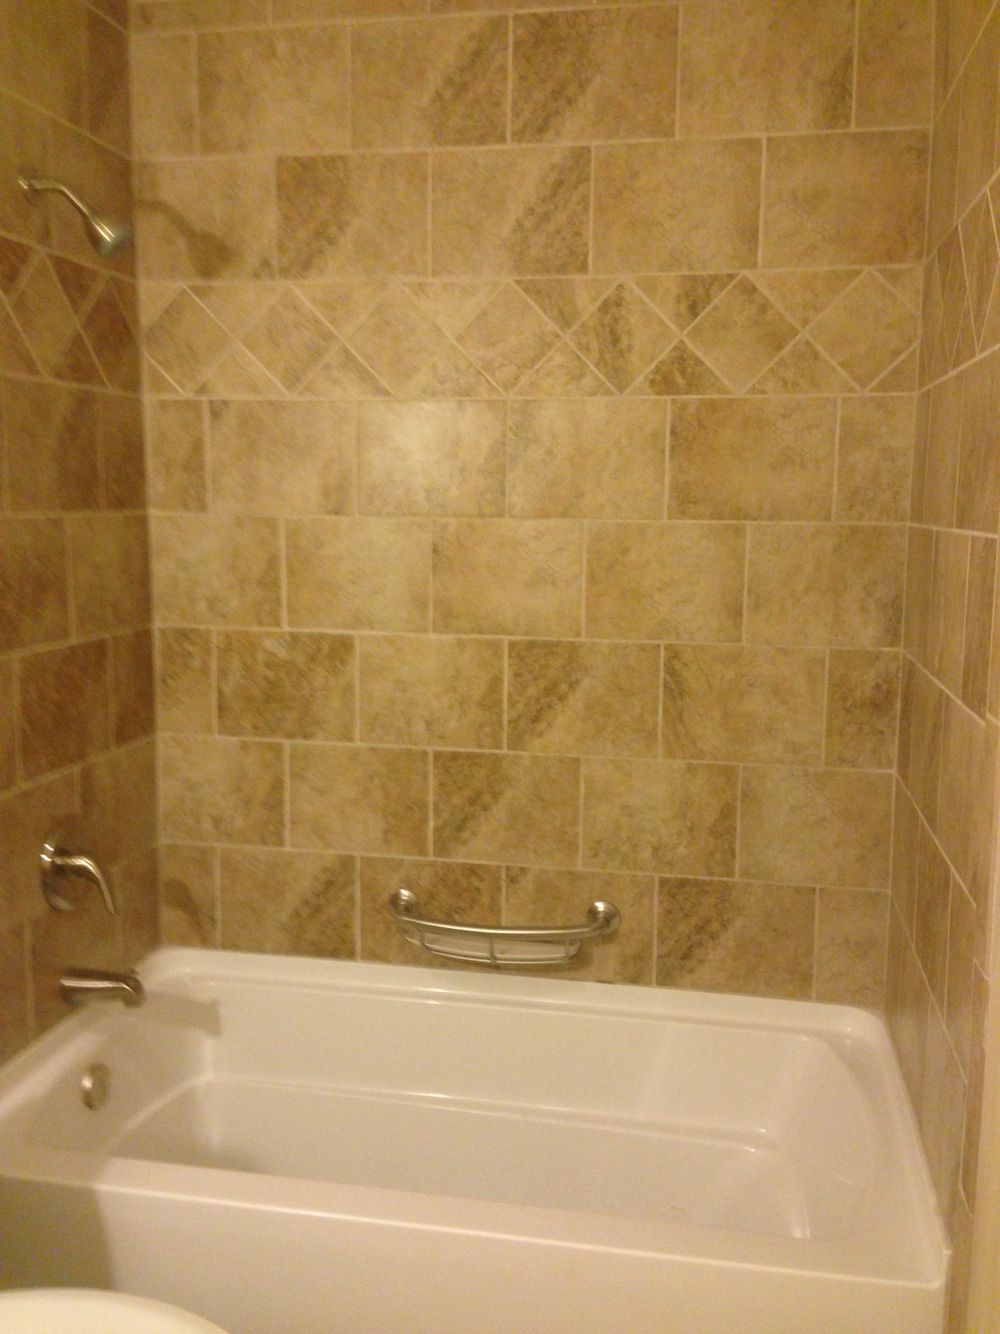 Beige tile tub surround with diamond border pattern. Tiled bathtub ...